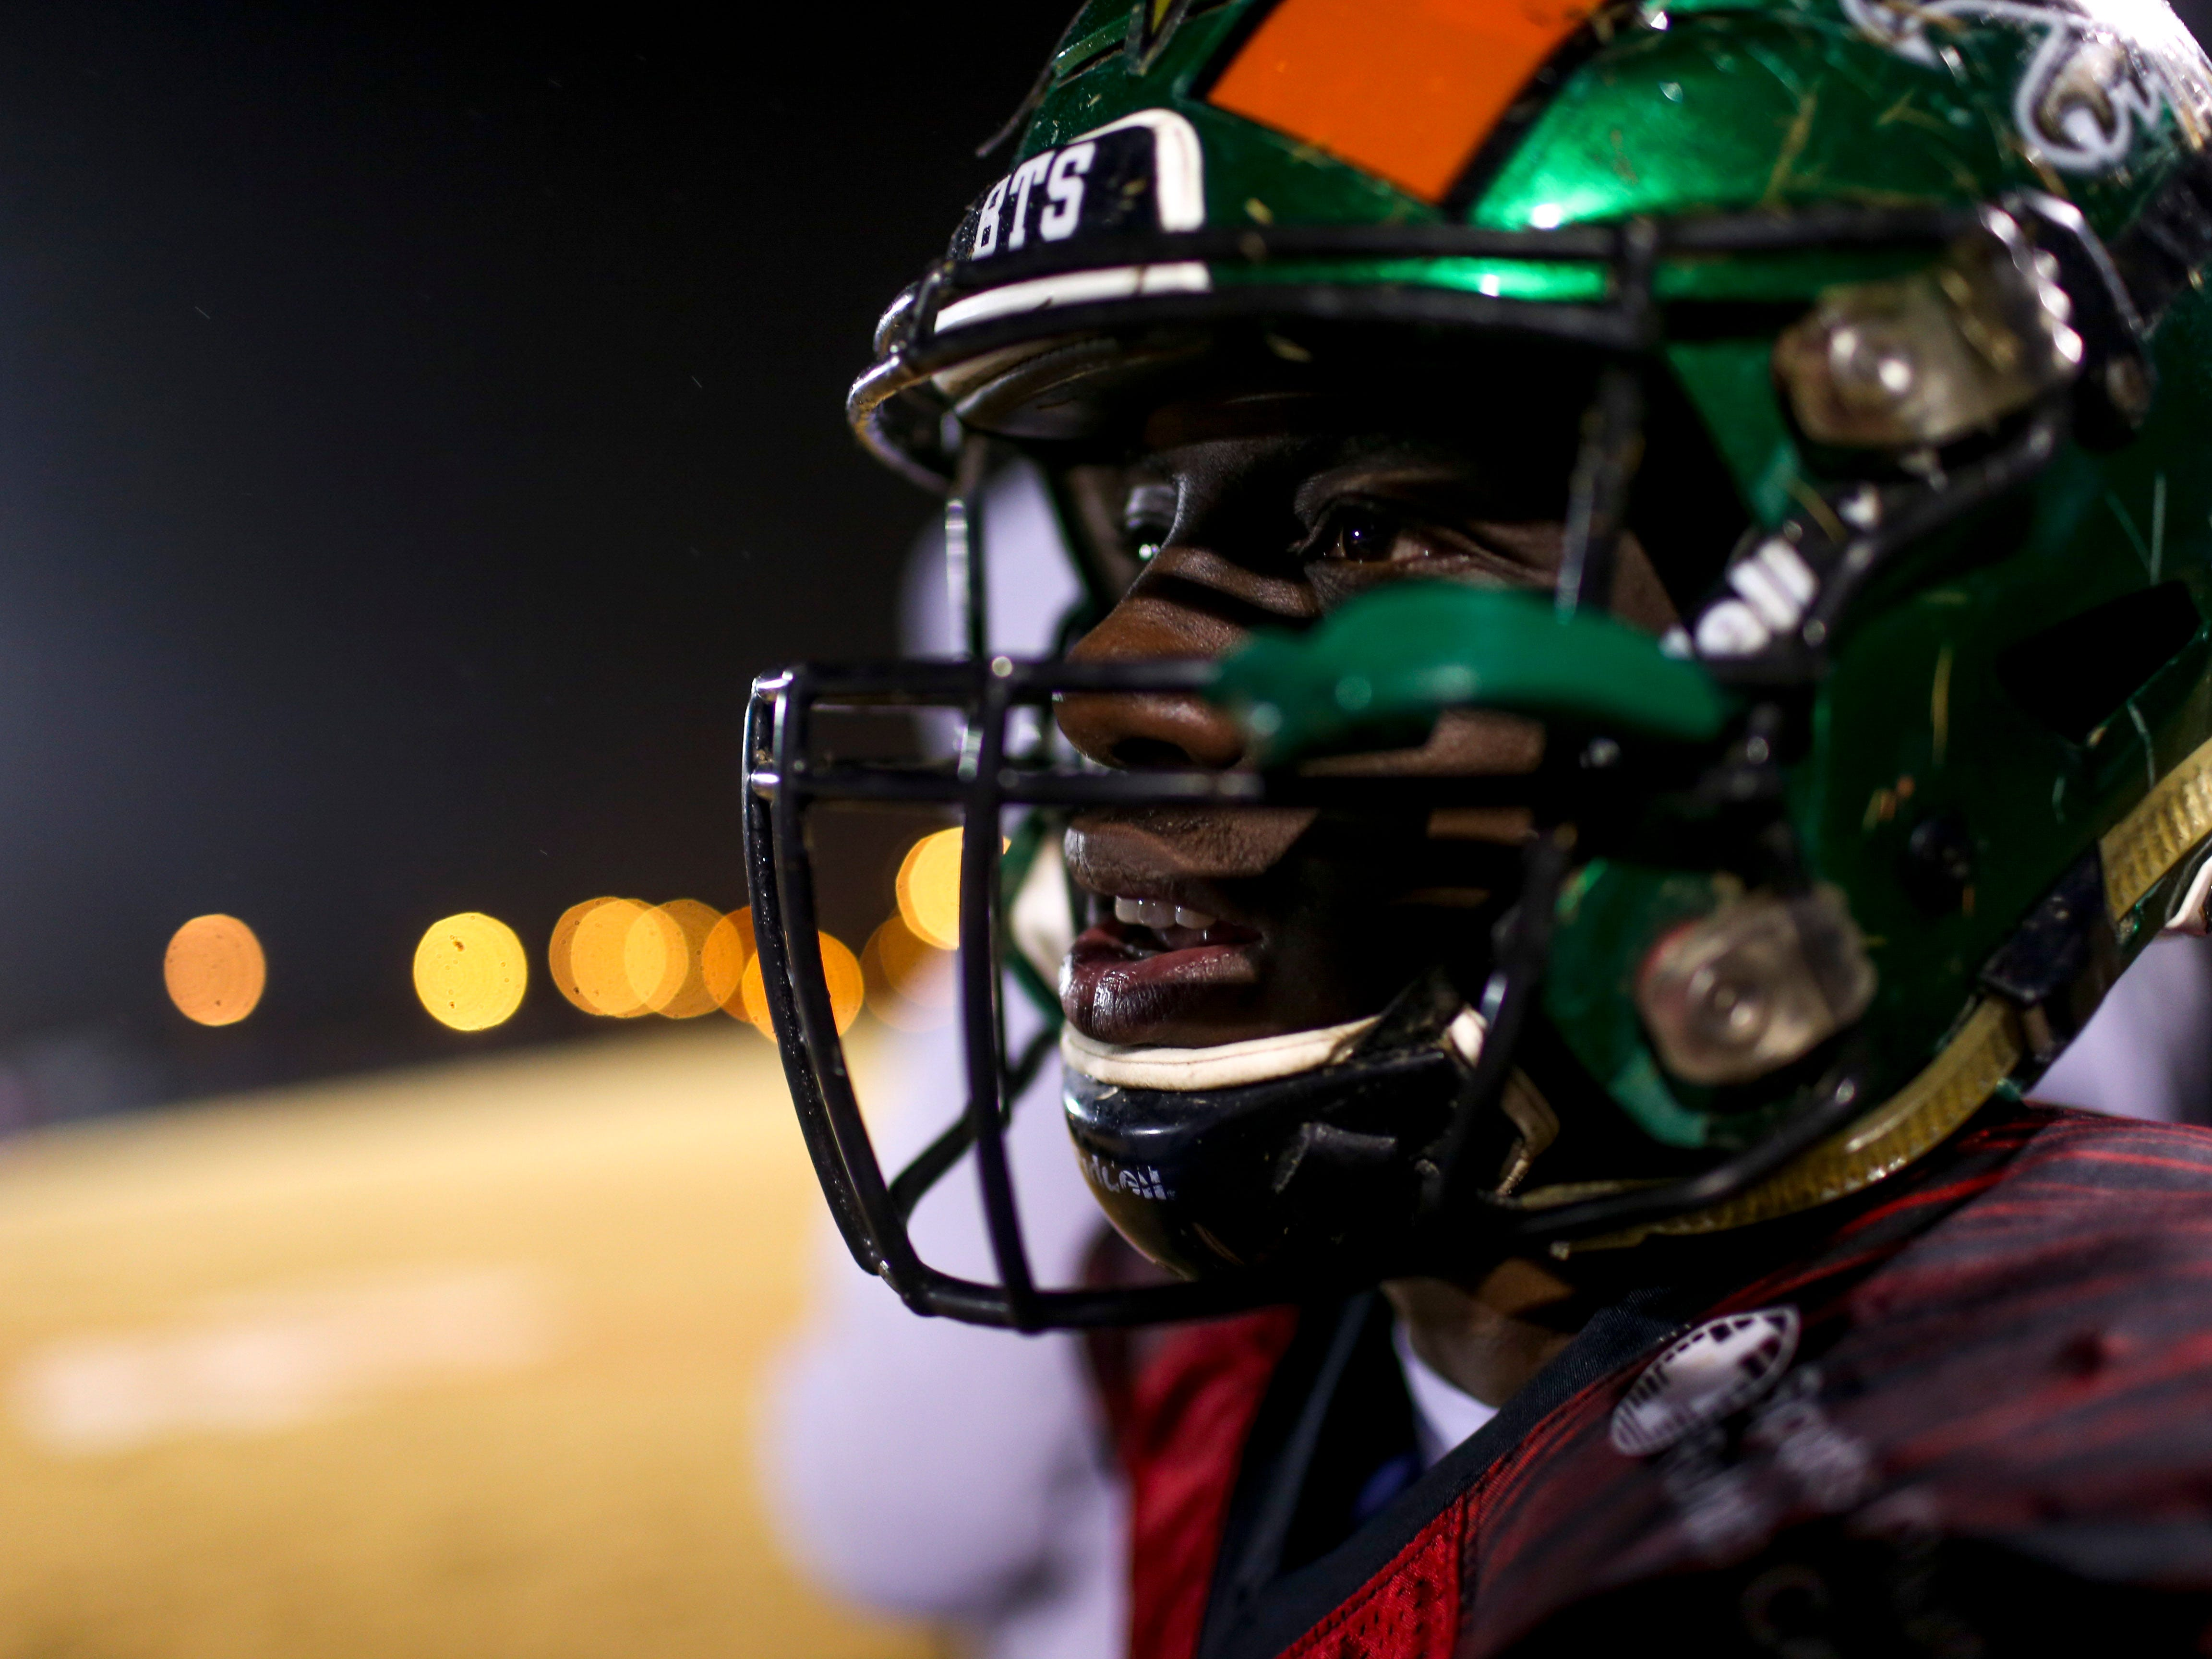 Lake Co's Dezmon Johnson (23) looks out over the field at plays unfolding during the West Tennessee All-Star football game at University School of Jackson in Jackson, Tenn., on Friday, Dec. 7, 2018.